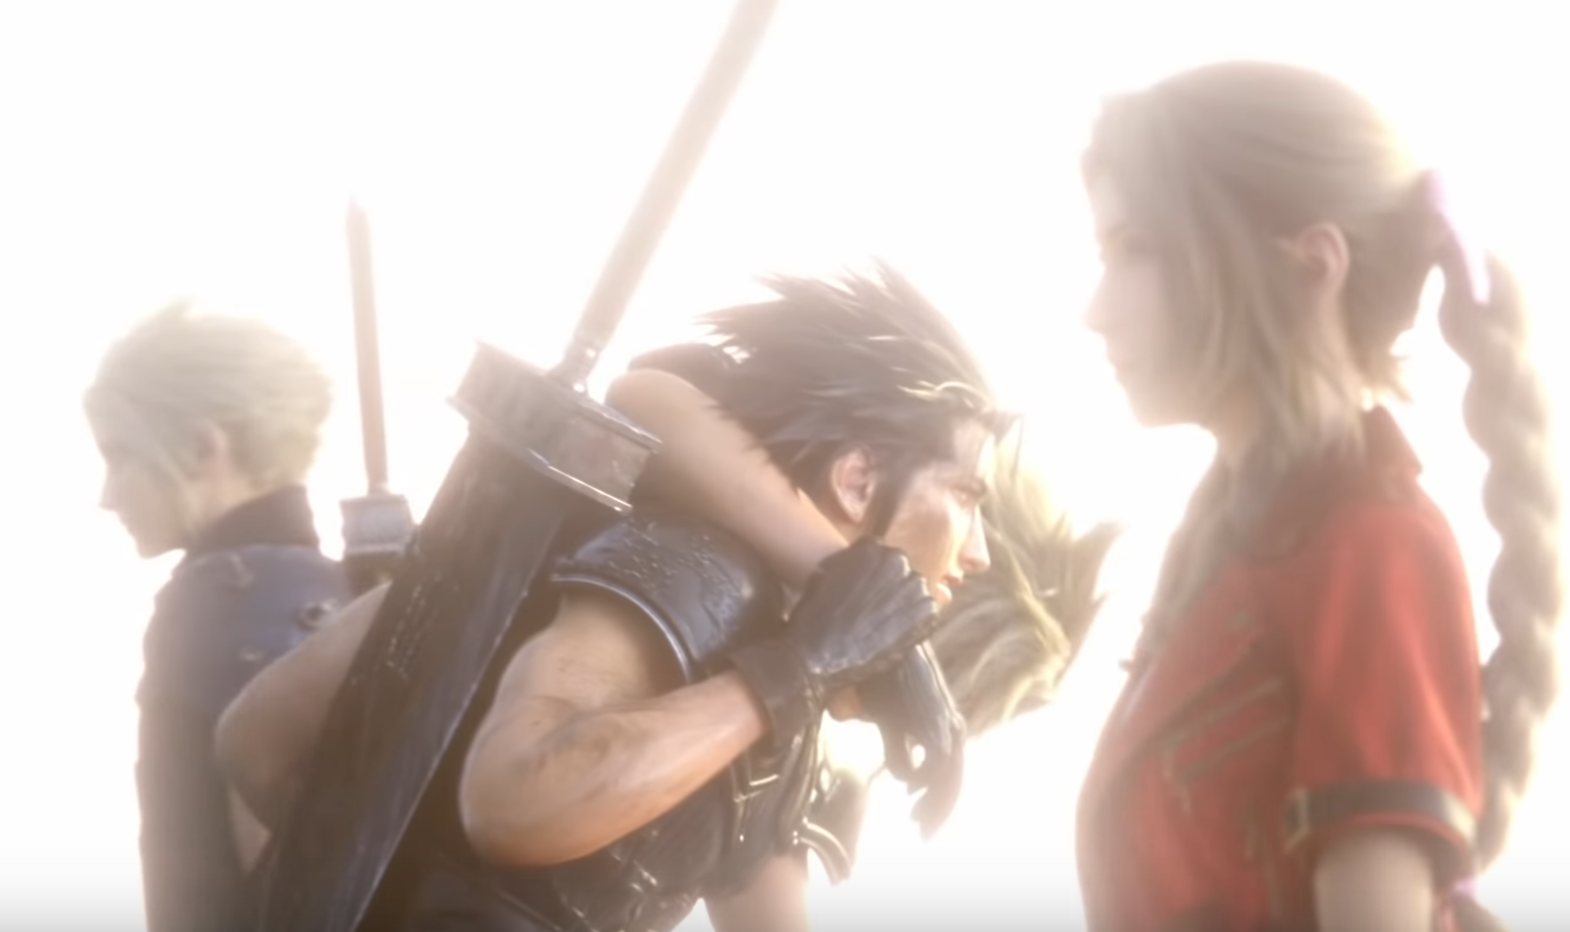 Zack crossing Aerith's path at the end of Final Fantasy VII Remake